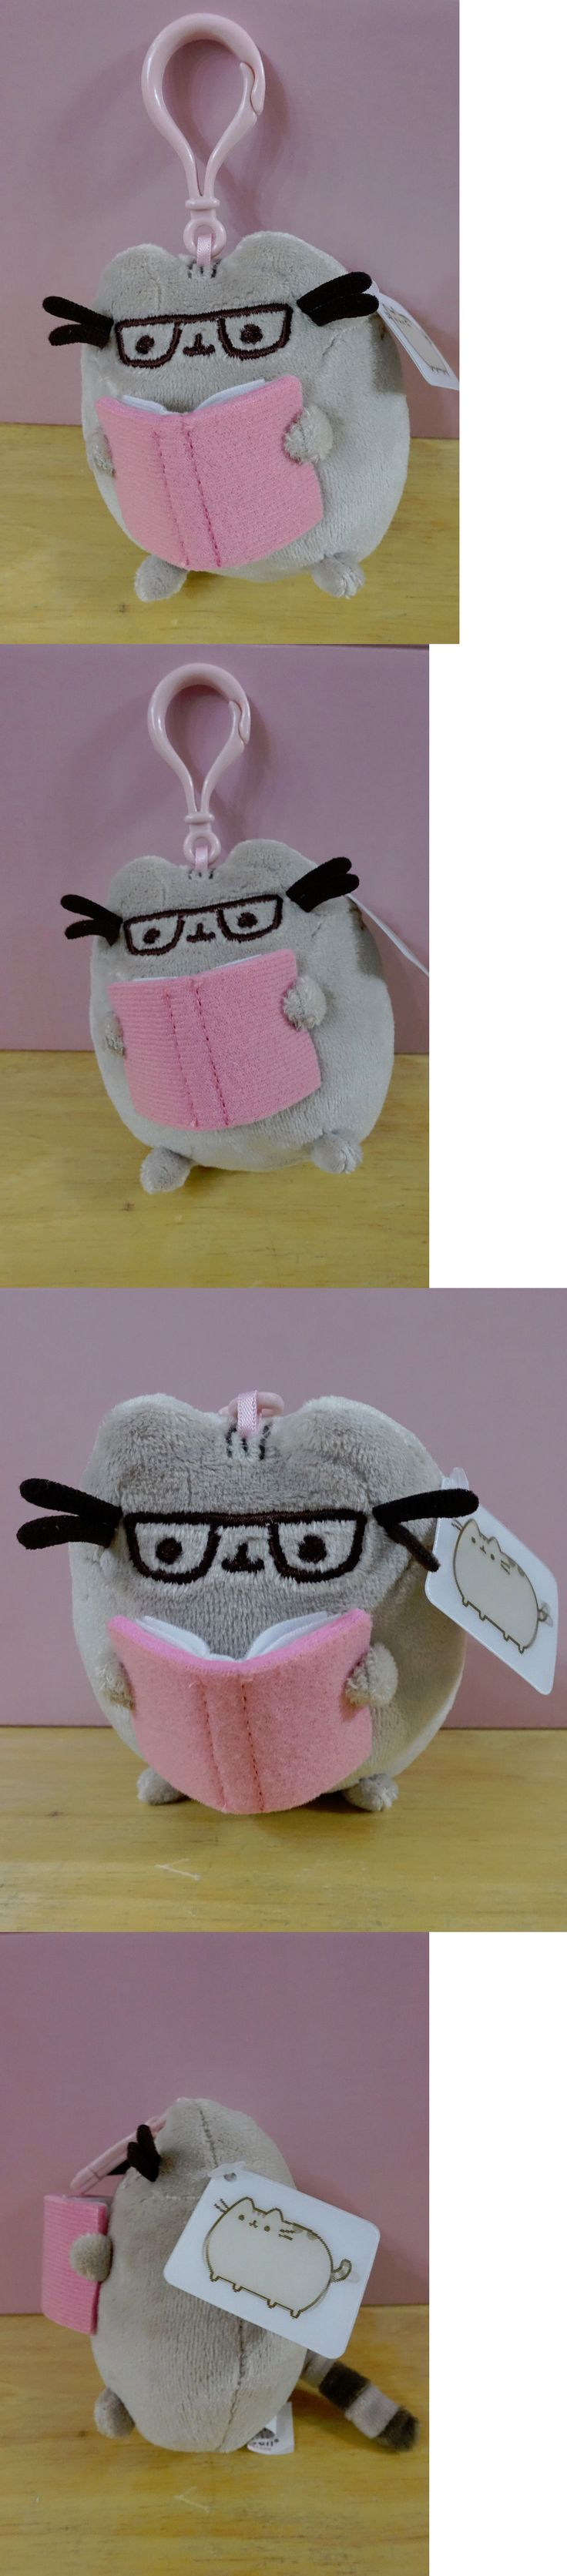 Gund 2598: Pusheen Small Reading Book Glasses Plush Backpack Clip Books-A-Million Exclusive -> BUY IT NOW ONLY: $30 on eBay!